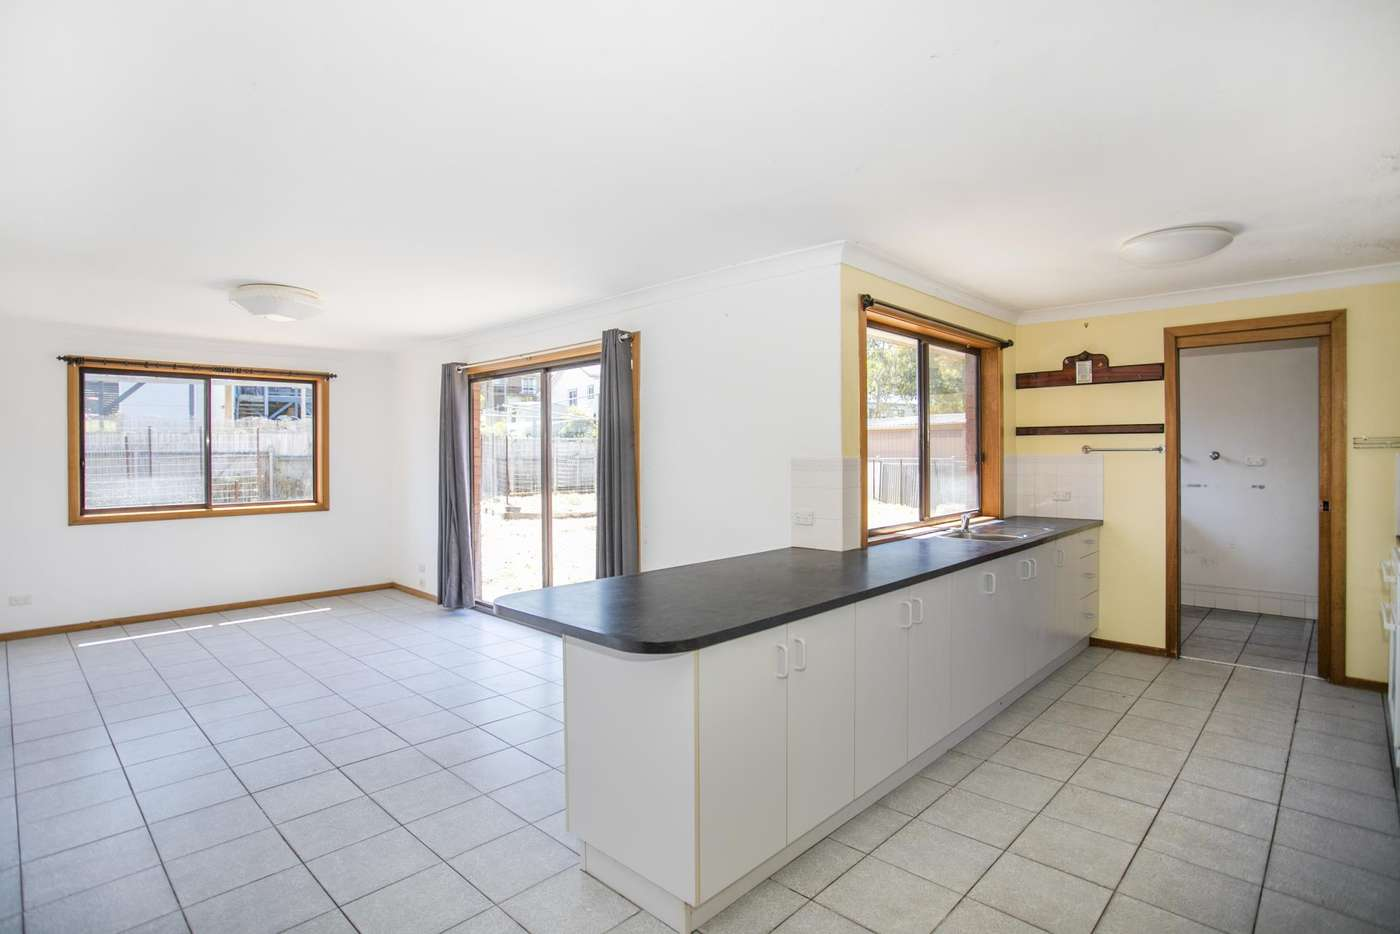 Fifth view of Homely house listing, 4 Lulworth Crescent, Lake Tabourie NSW 2539